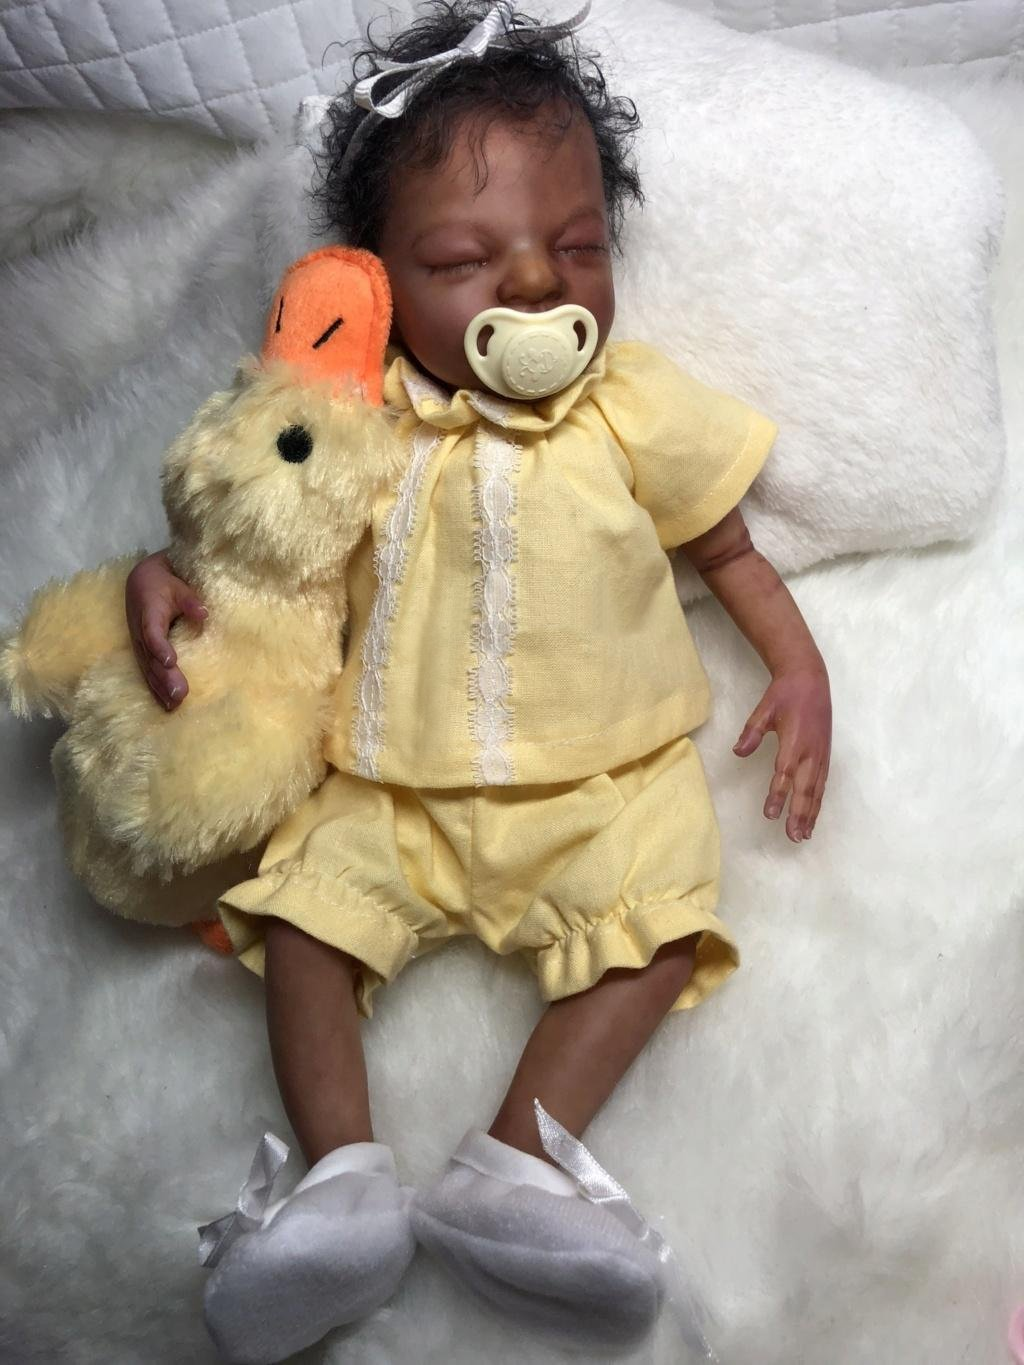 Easter Baby Contest  C_user12